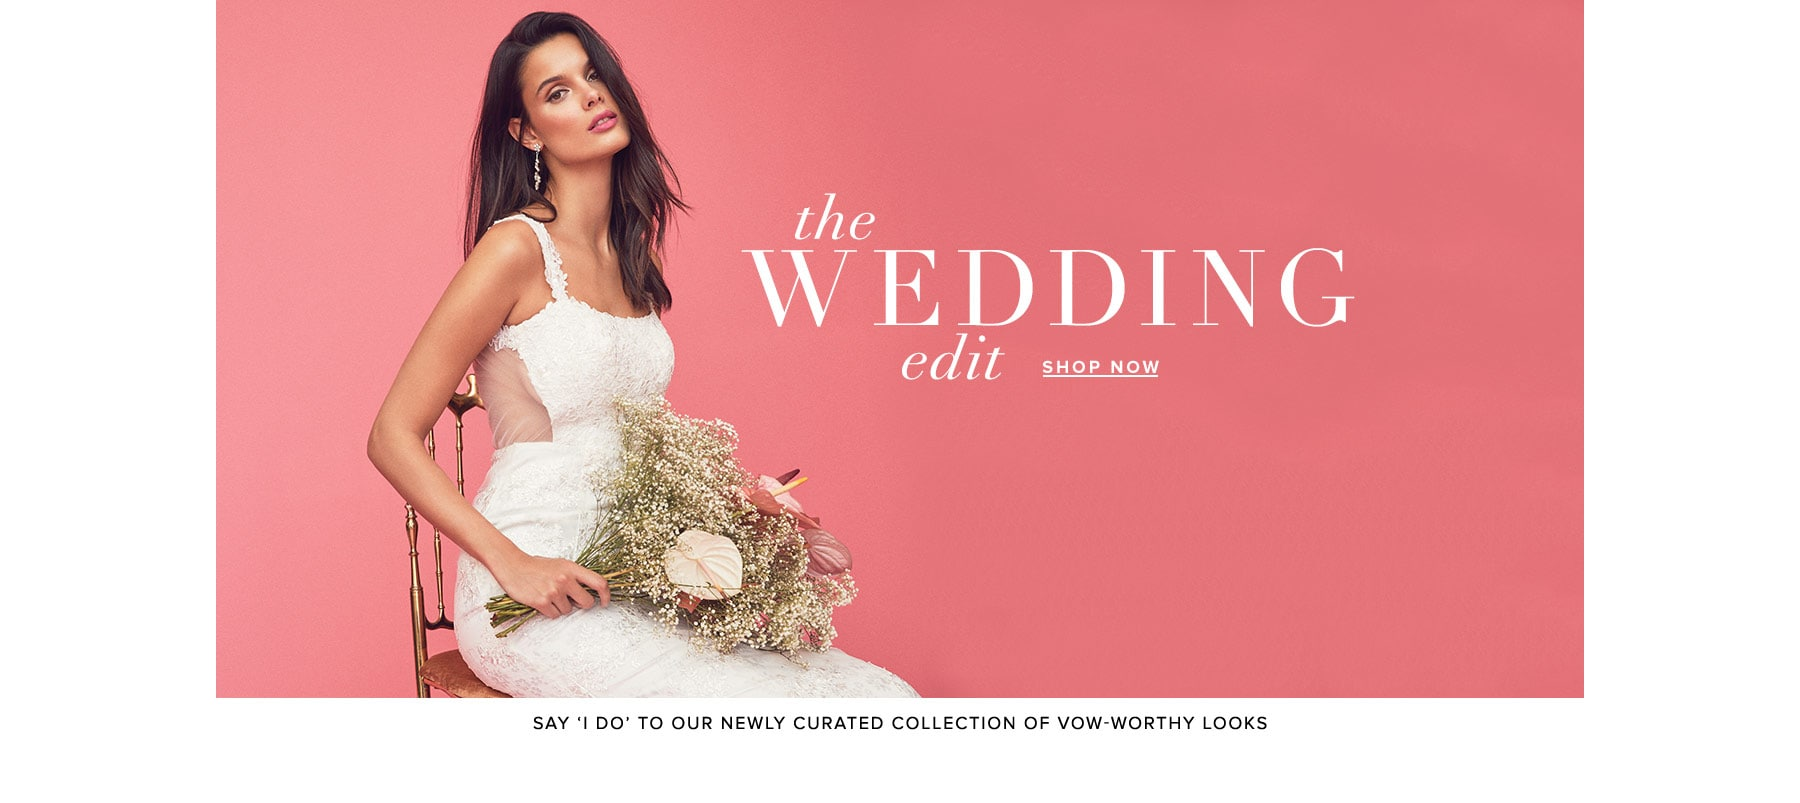 The Wedding Edit. Say 'I do' to our newly curated collection of vow-worthy looks. Shop Now